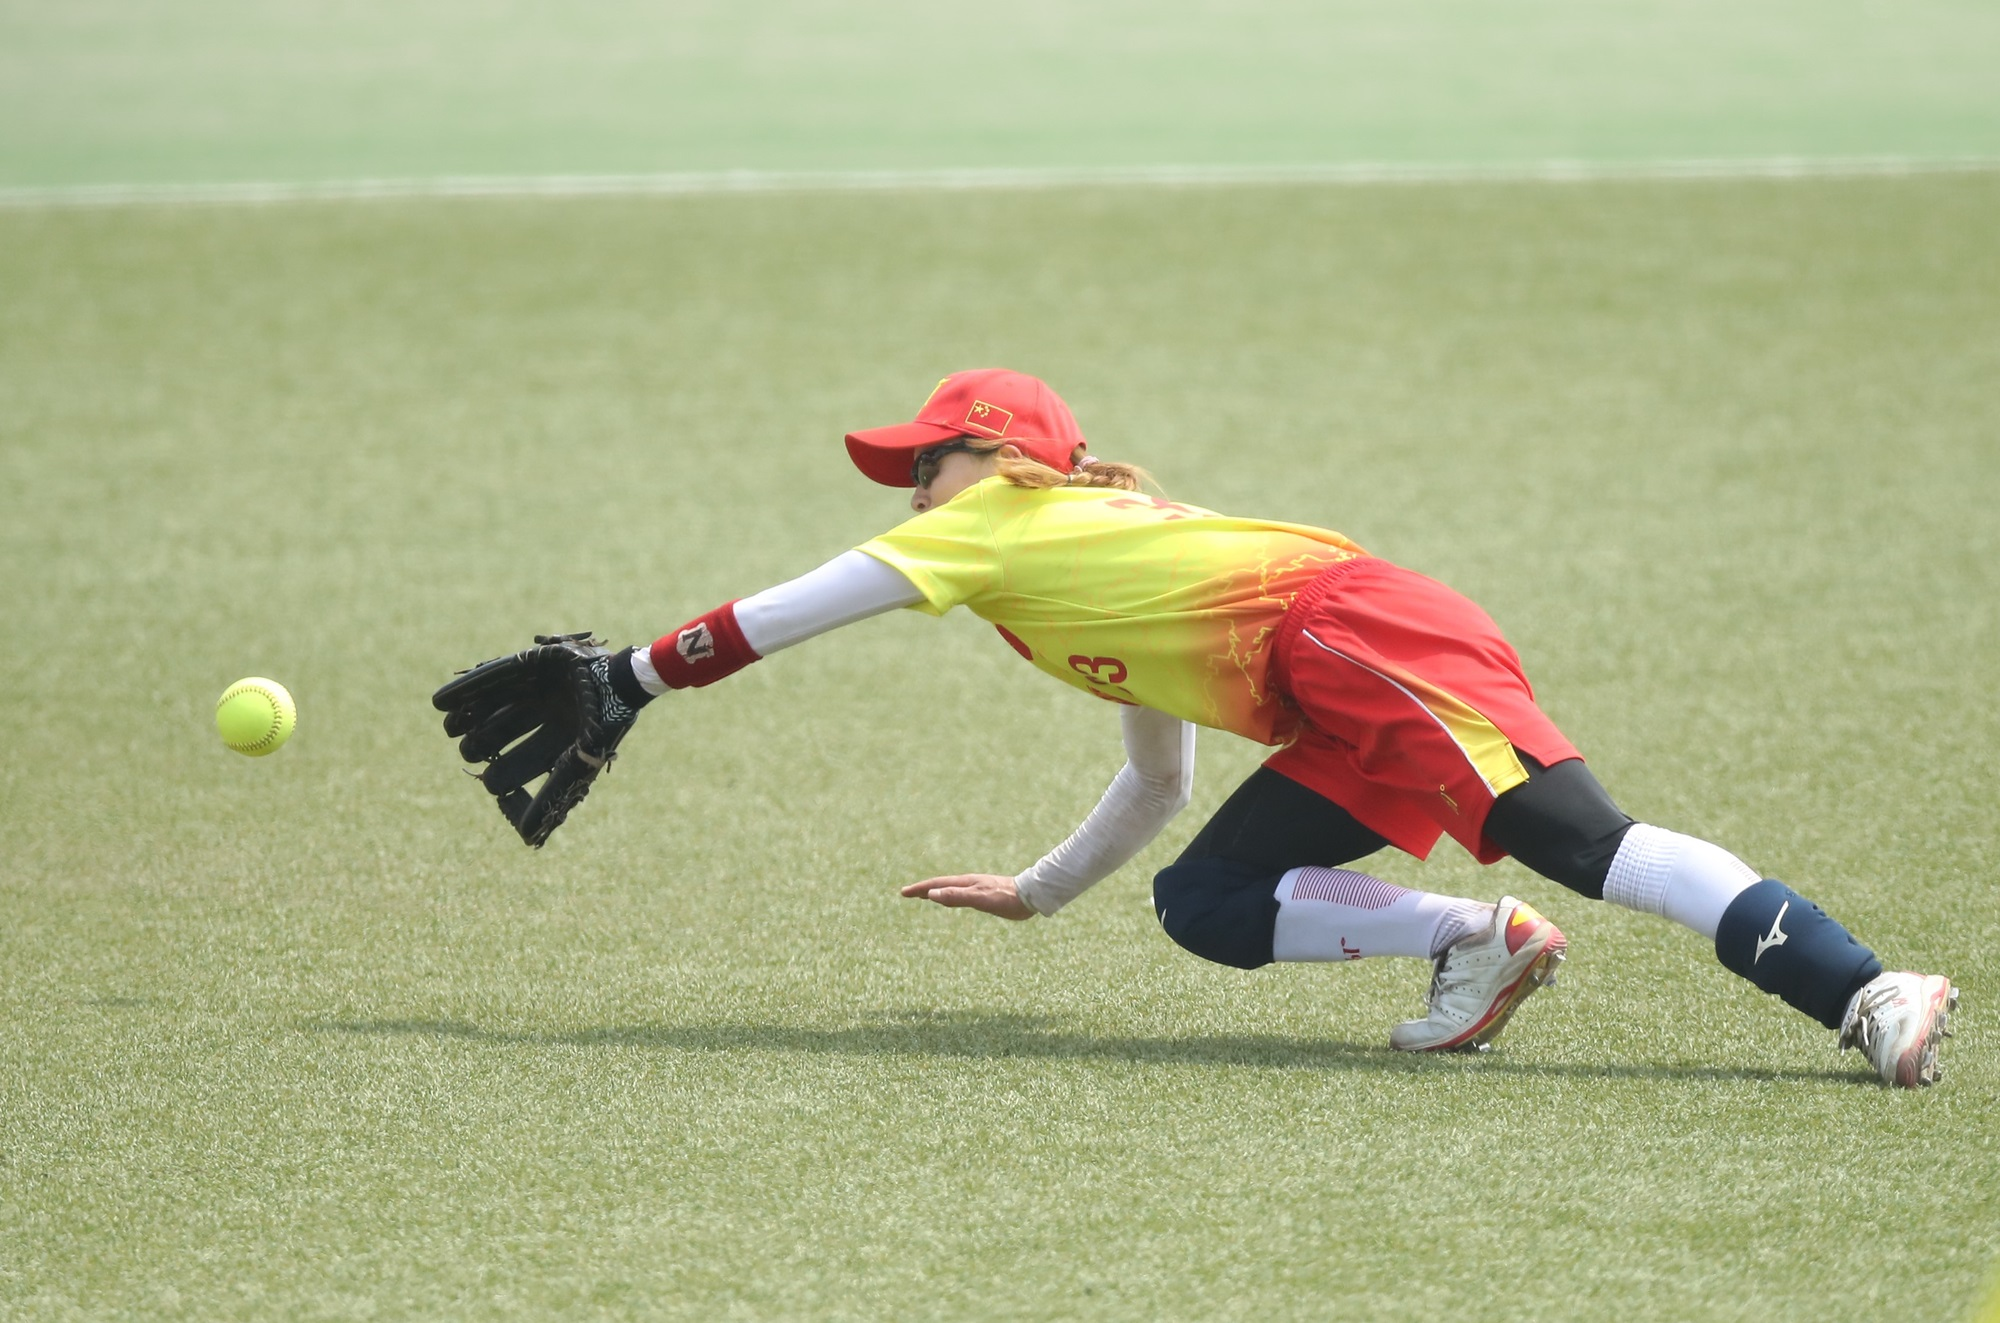 A diving catch by China's Li Huan